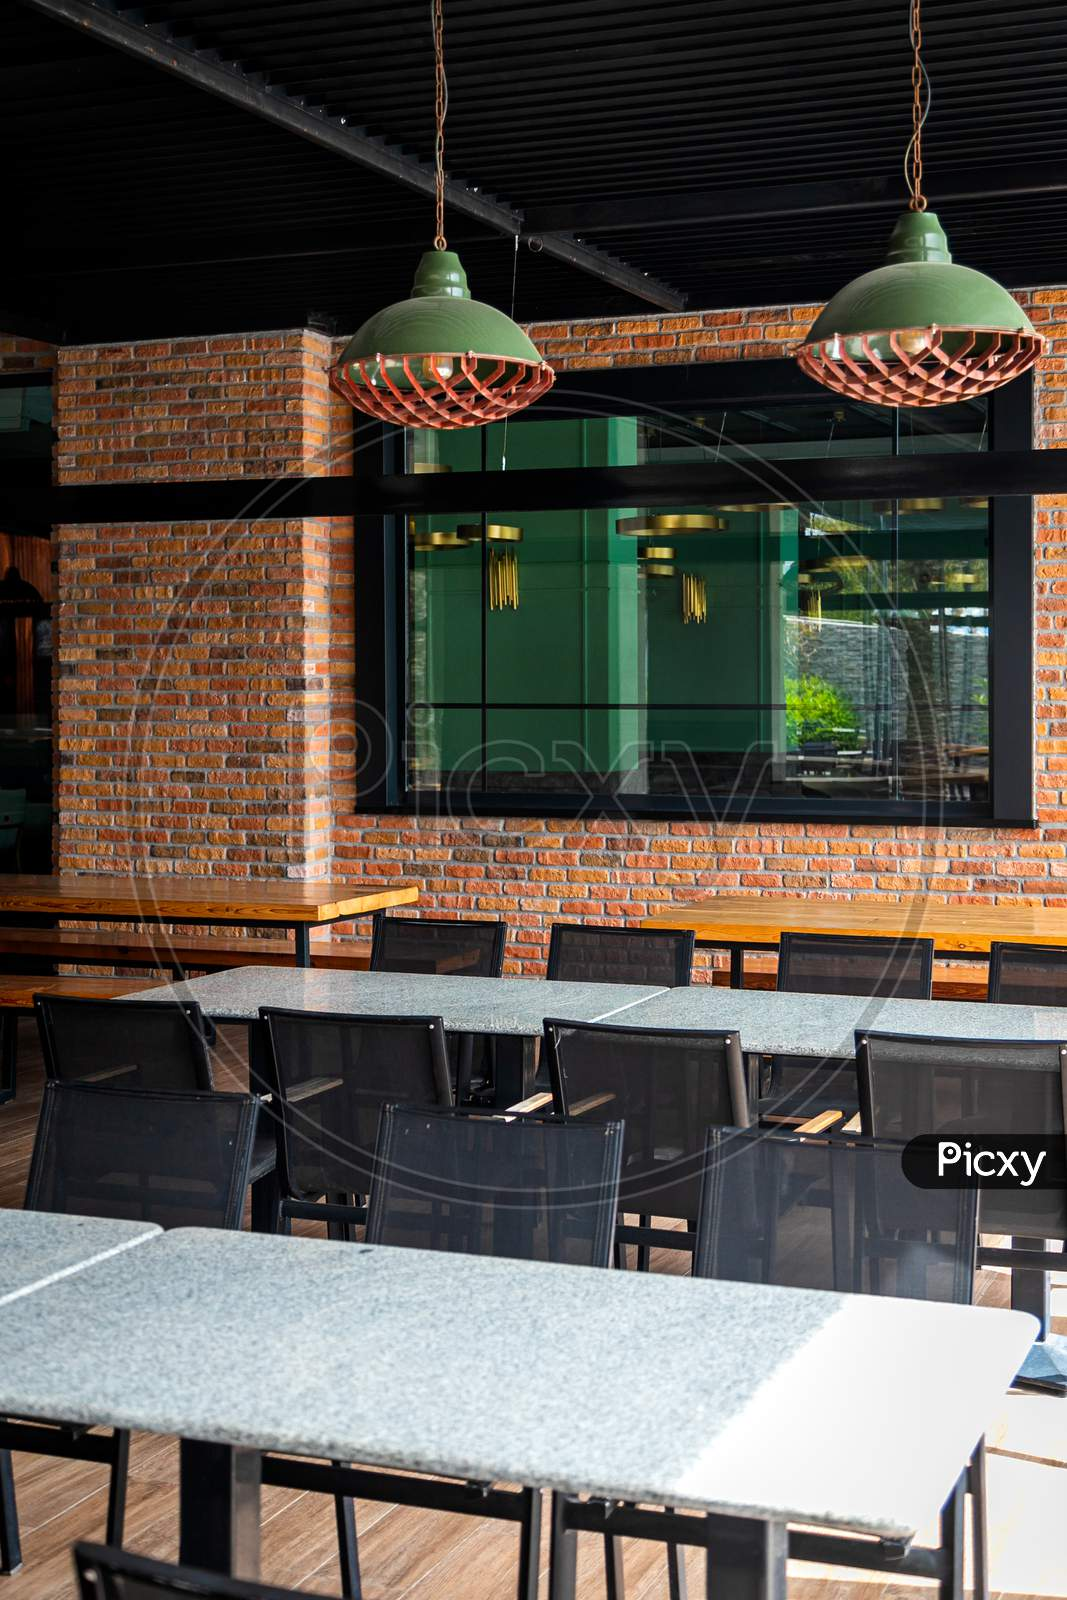 Huge Dining Area With Dark Tables And Chairs In A Loft-Style Street With Brick Walls And Metal Lamps